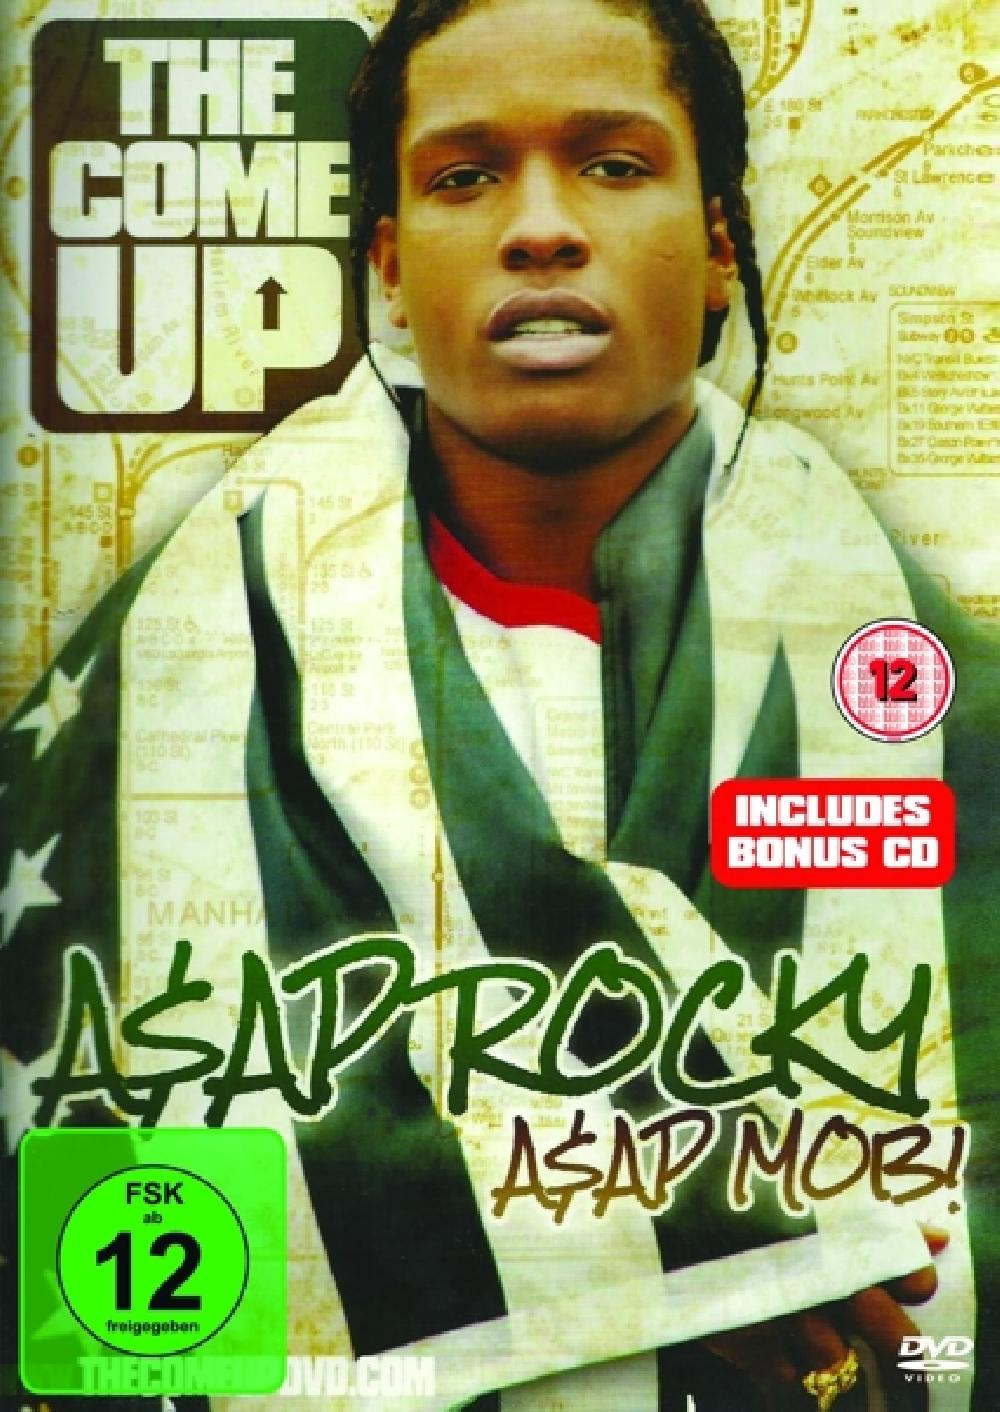 ASAP ROCKY - ASAP MOB: THE.. -DVD+CD- (nieuw) - DVD